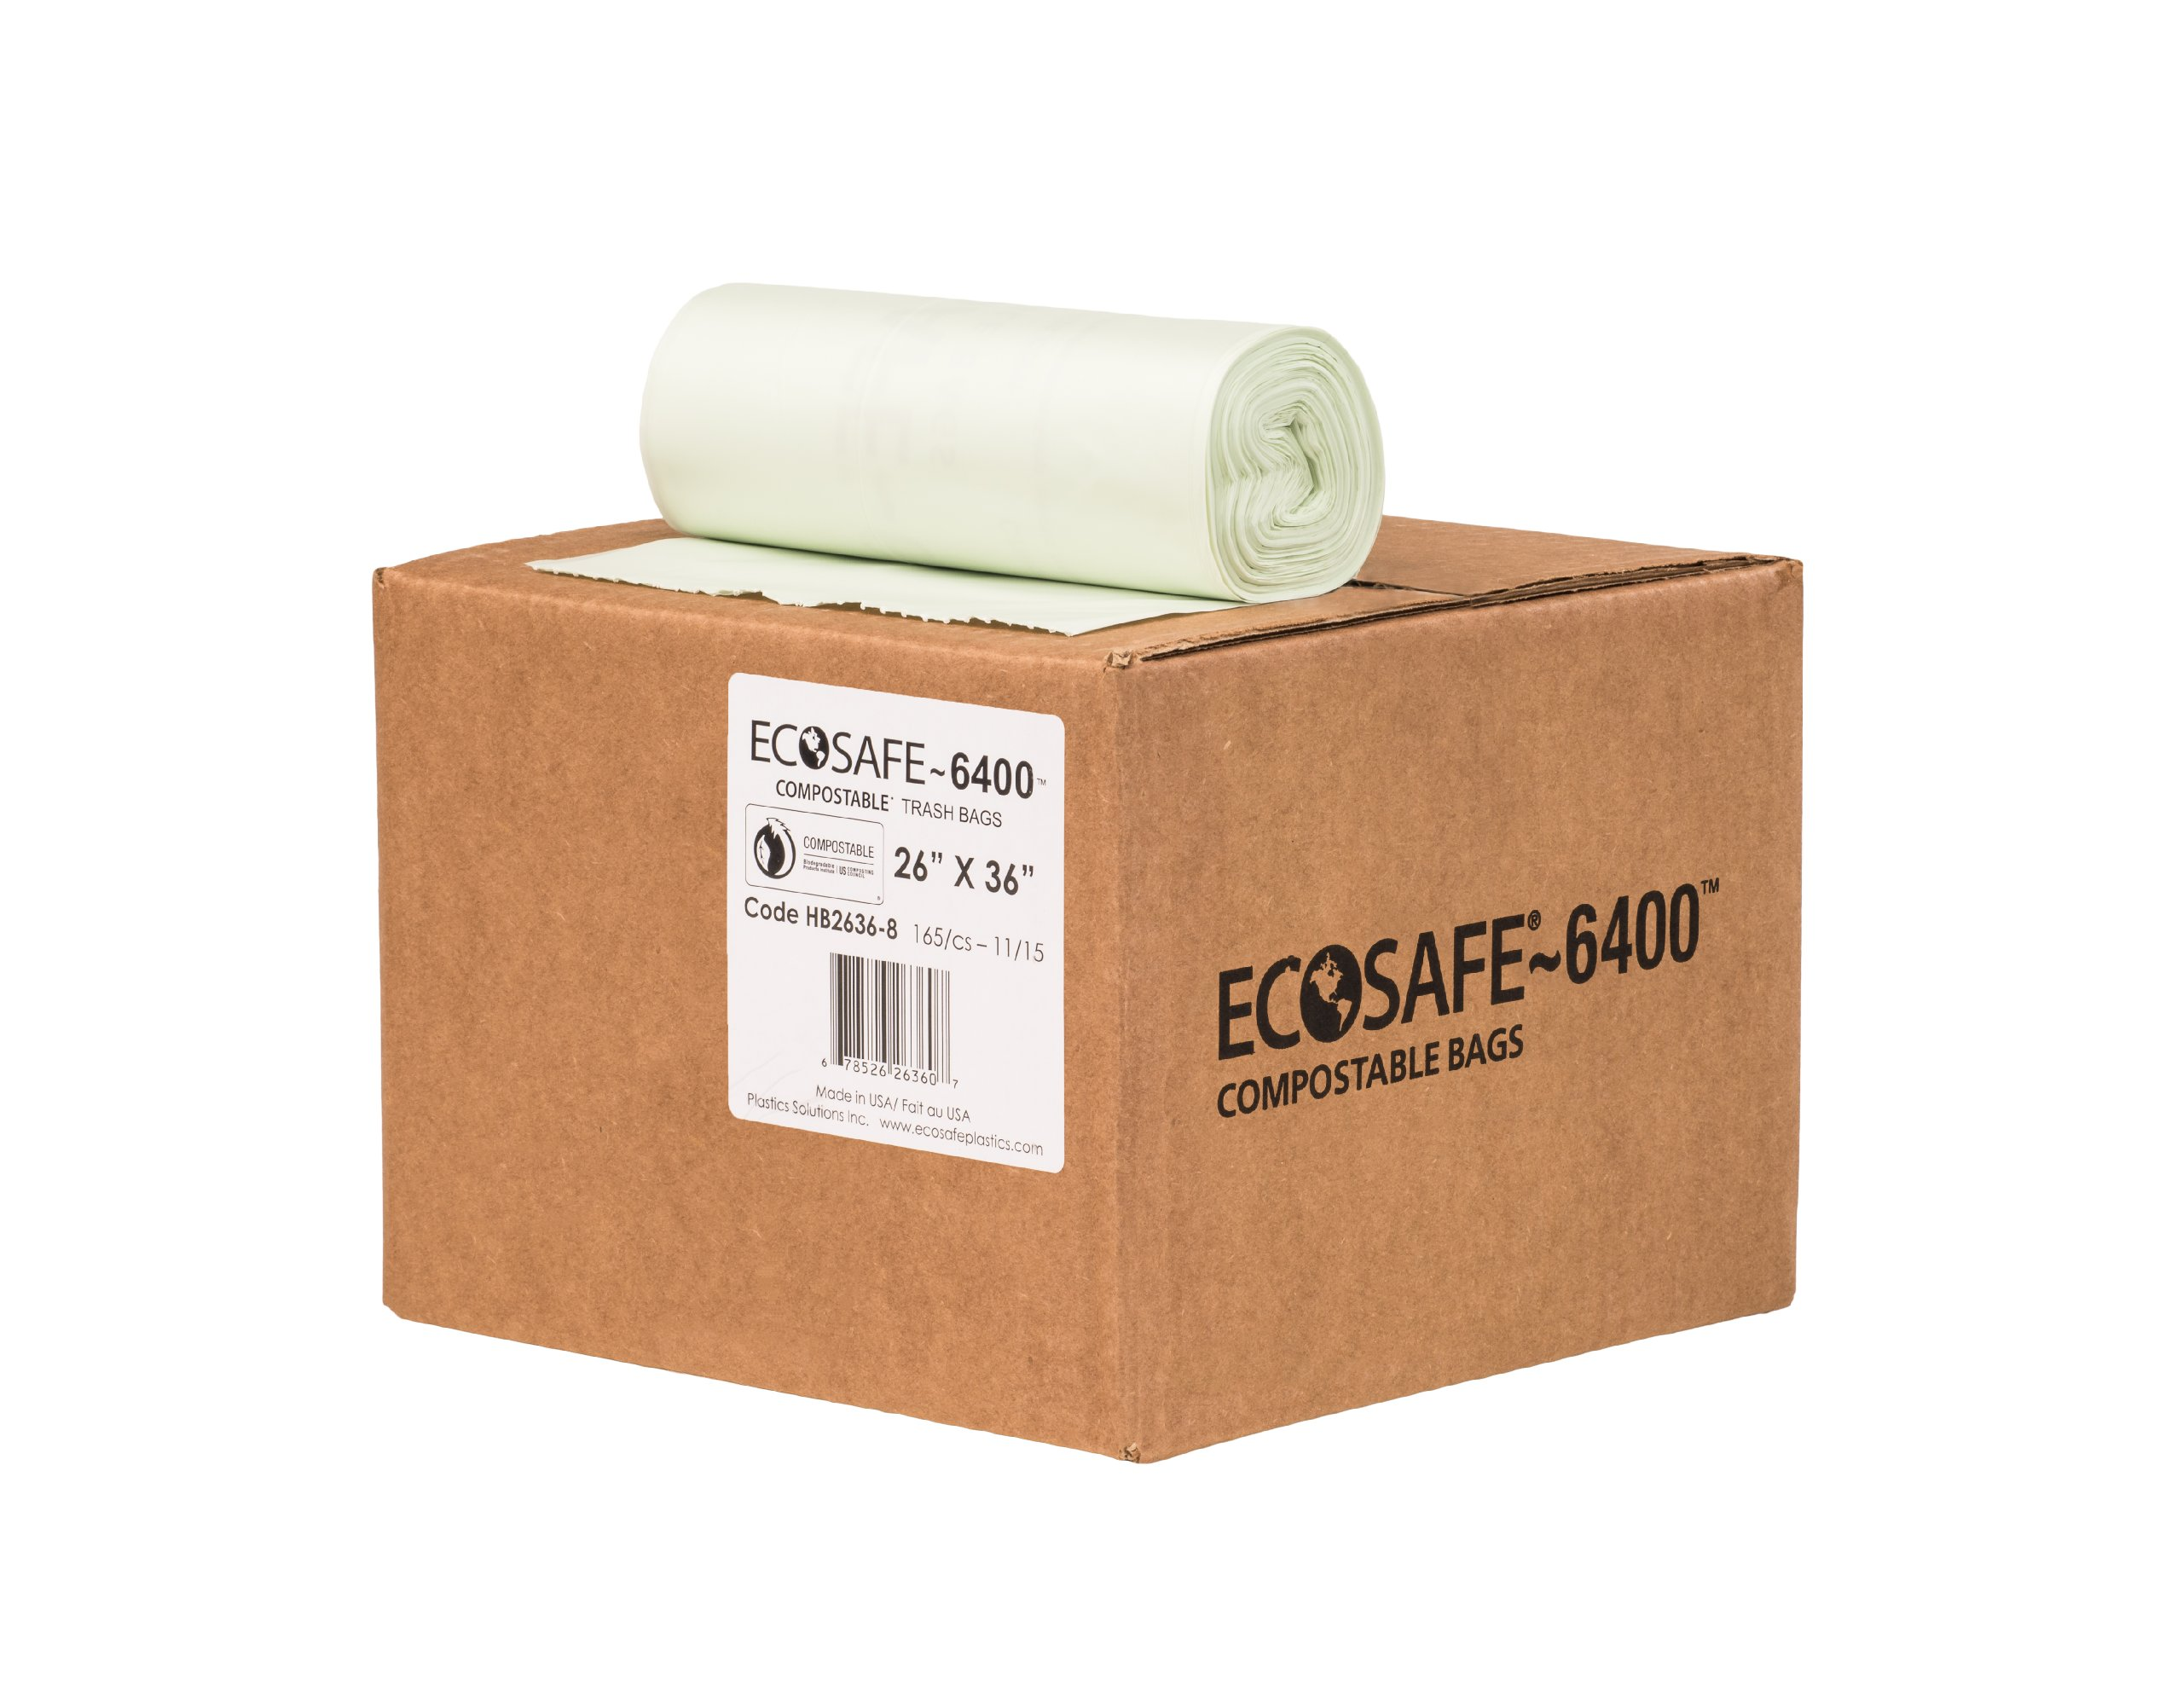 EcoSafe-6400 HB2636-8 Compostable Bag, Certified Compostable, 20-Gallon, Green (Pack of 165) by EcoSafe